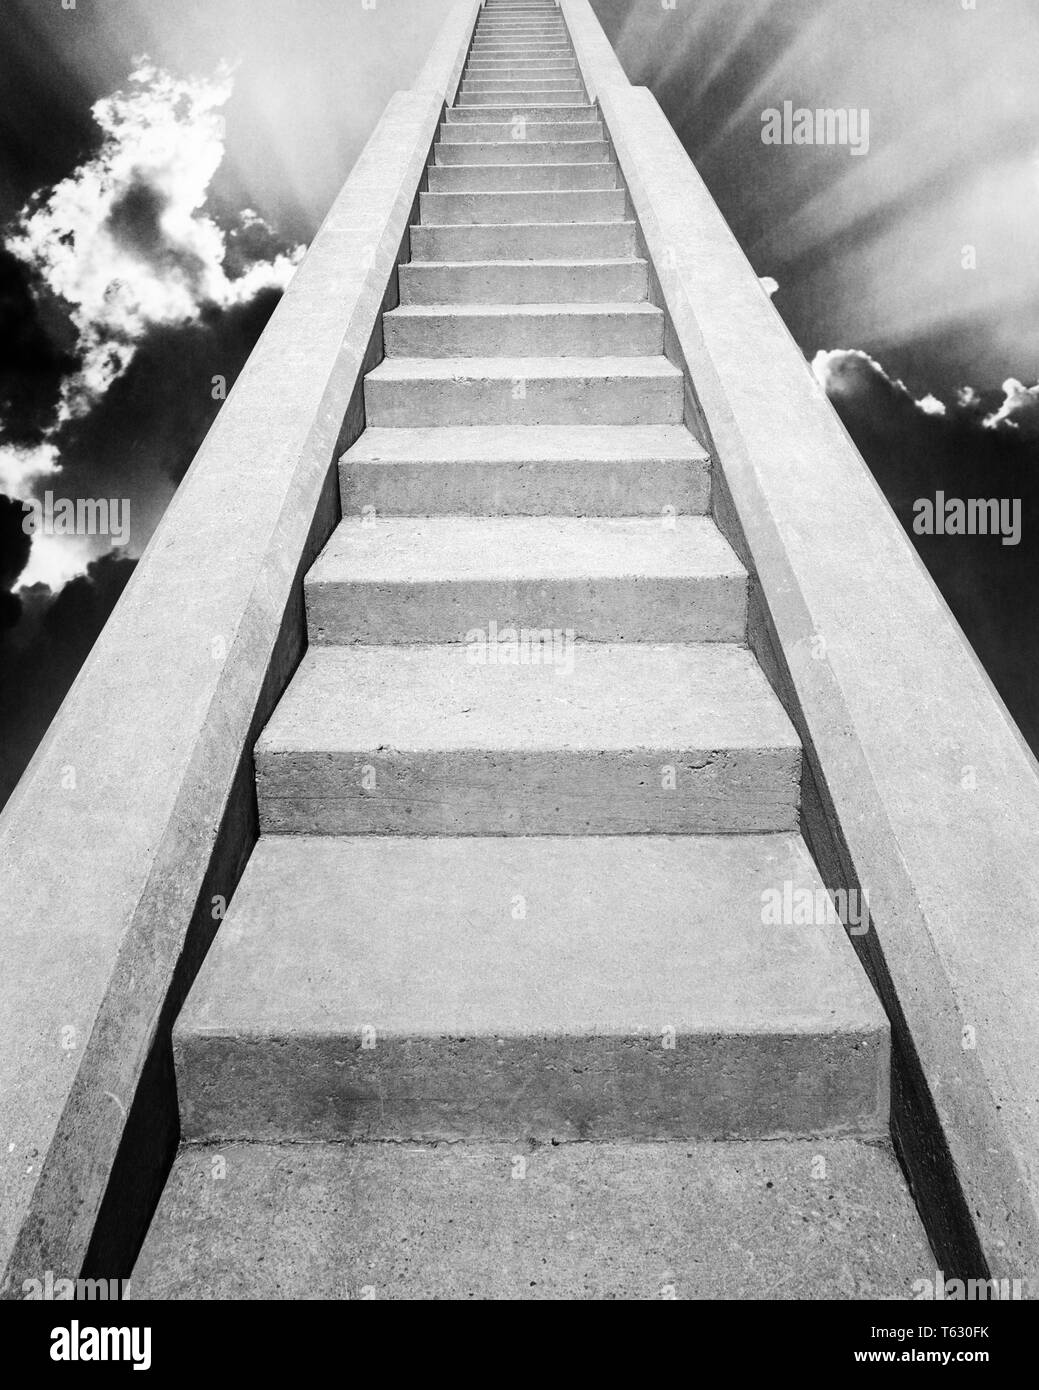 1960s VIEW AT BOTTOM OF SET OF CONCRETE STAIRS  LOOKING UP TO THE TOP INTO SKY WITH GOD RAYS LIGHT STAIRWAY TO HEAVEN PARADISE - s14723a HAR001 HARS CHOICE COMPOSITE EXTERIOR LOW ANGLE RAYS STAIR DIRECTION GOD RAYS HEAVEN UP STAIRCASE STAIRWAY CONCEPT CONNECTION CONCEPTUAL STILL LIFE PARADISE STEEP STYLISH FAITHFUL SYMBOLIC CONCEPTS FAITH IDEAS LOOKING  UP REWARD BELIEF BLACK AND WHITE CONCRETE HAR001 OLD FASHIONED REPRESENTATION SUN RAYS - Stock Image